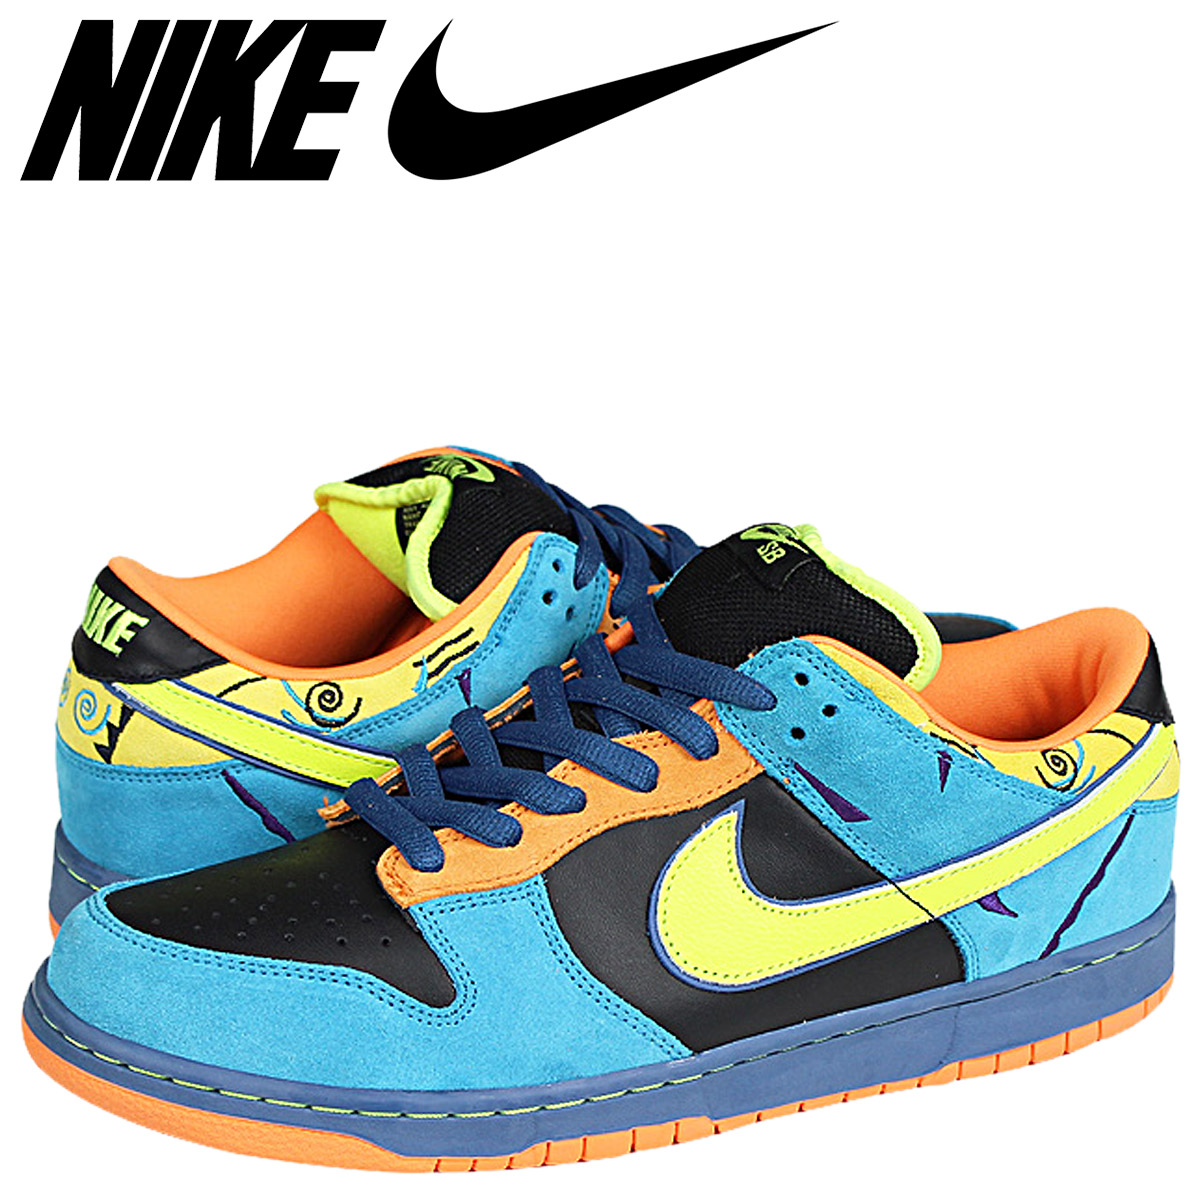 4991814768a Whats up Sports  NIKE Nike dunk SB sneakers DUNK LOW PRO SB SKATE OR DIE  dunk low pro S Beith Kate or die 304